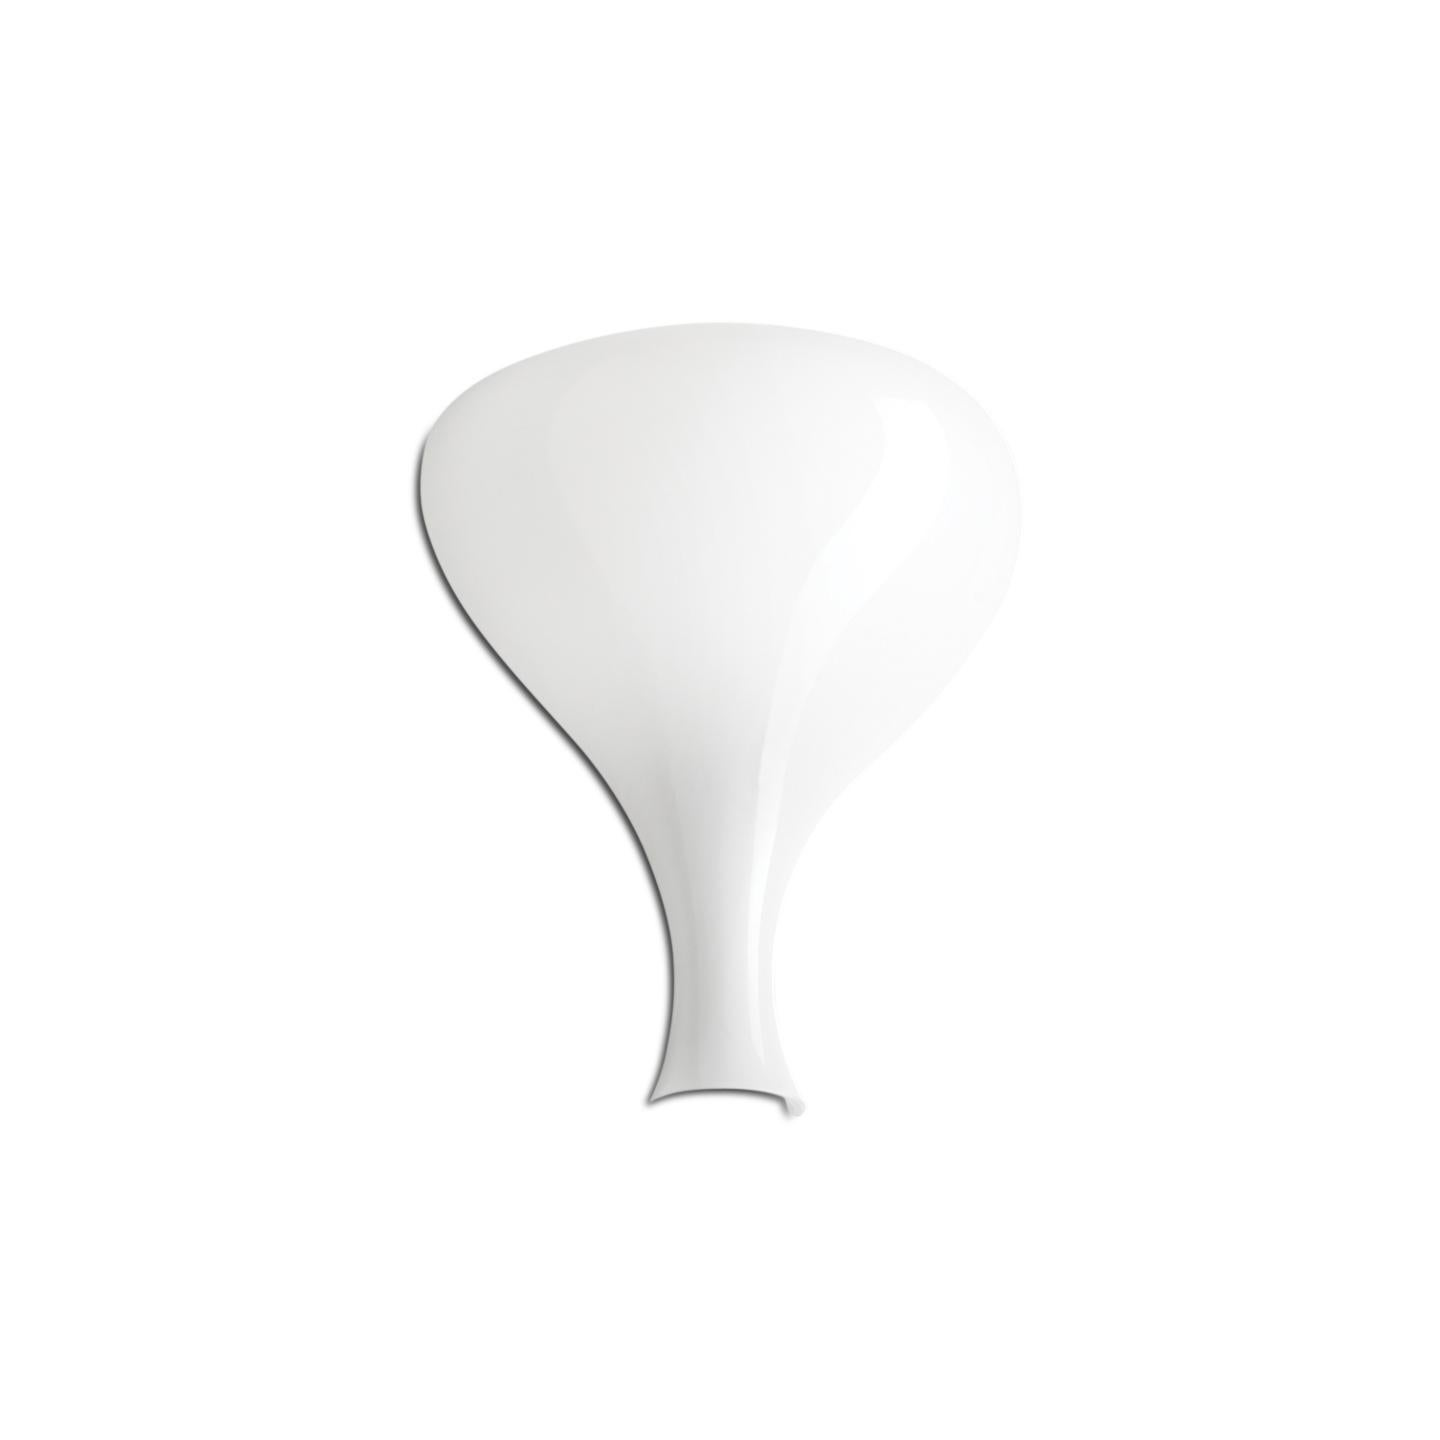 Leucos Summer P Wall Sconce in Glossy and Matte White by Eva Zeisel